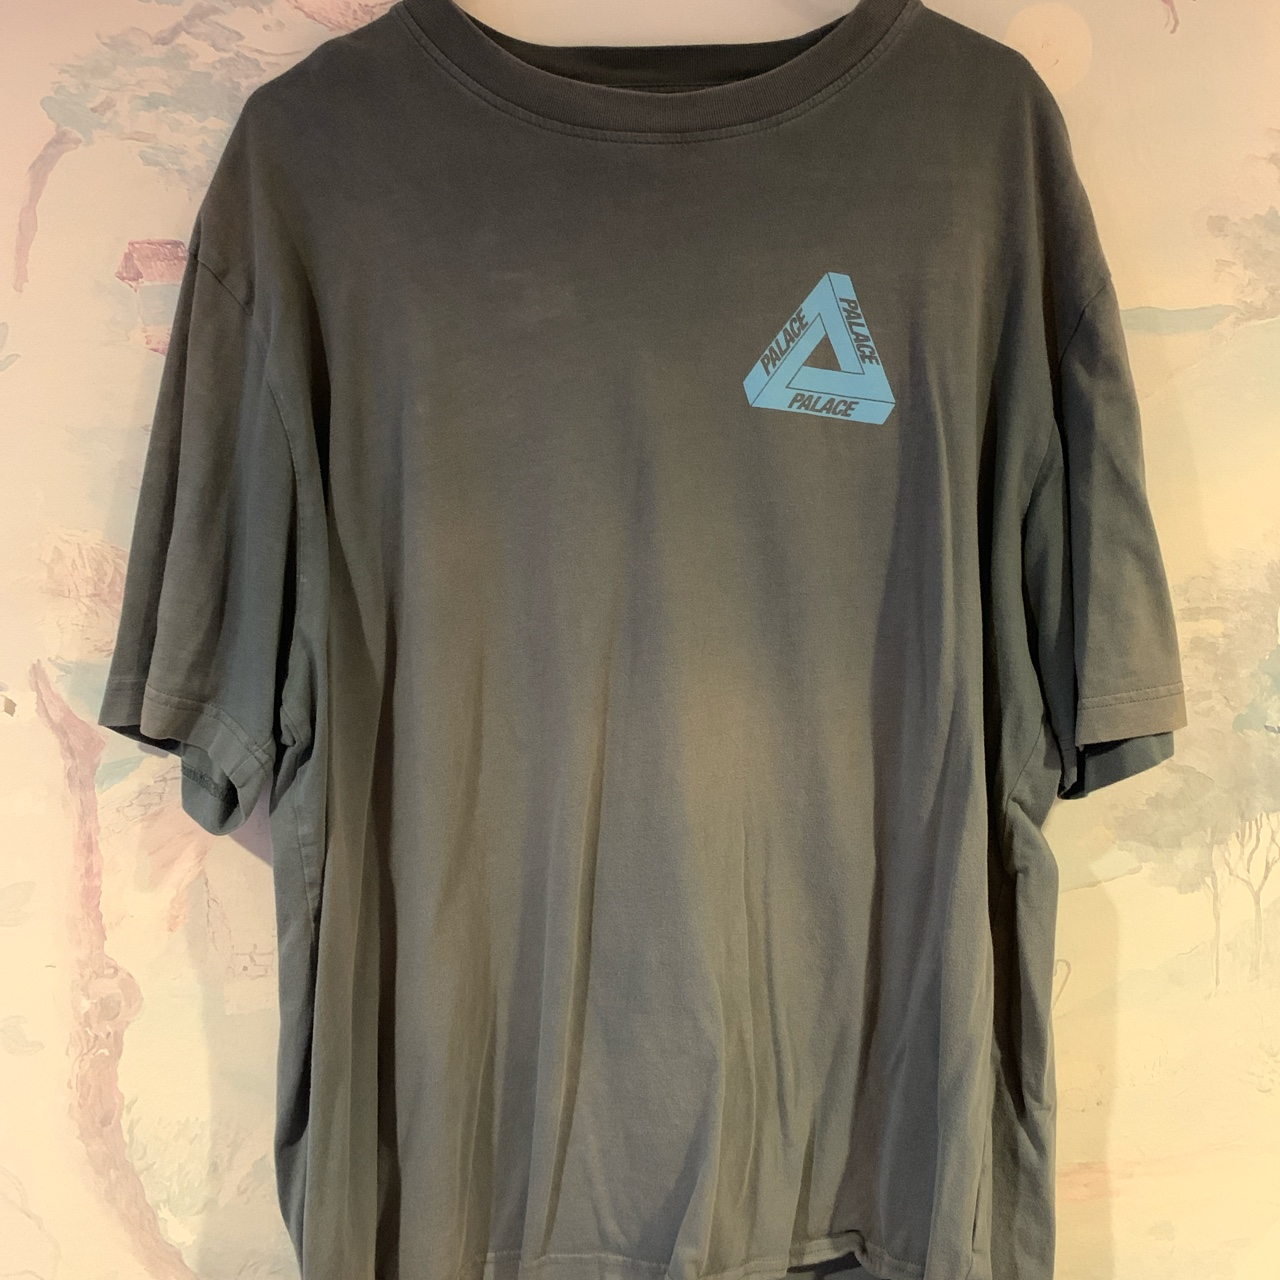 Product Image 1 - Beater palace tee. Flawed, some